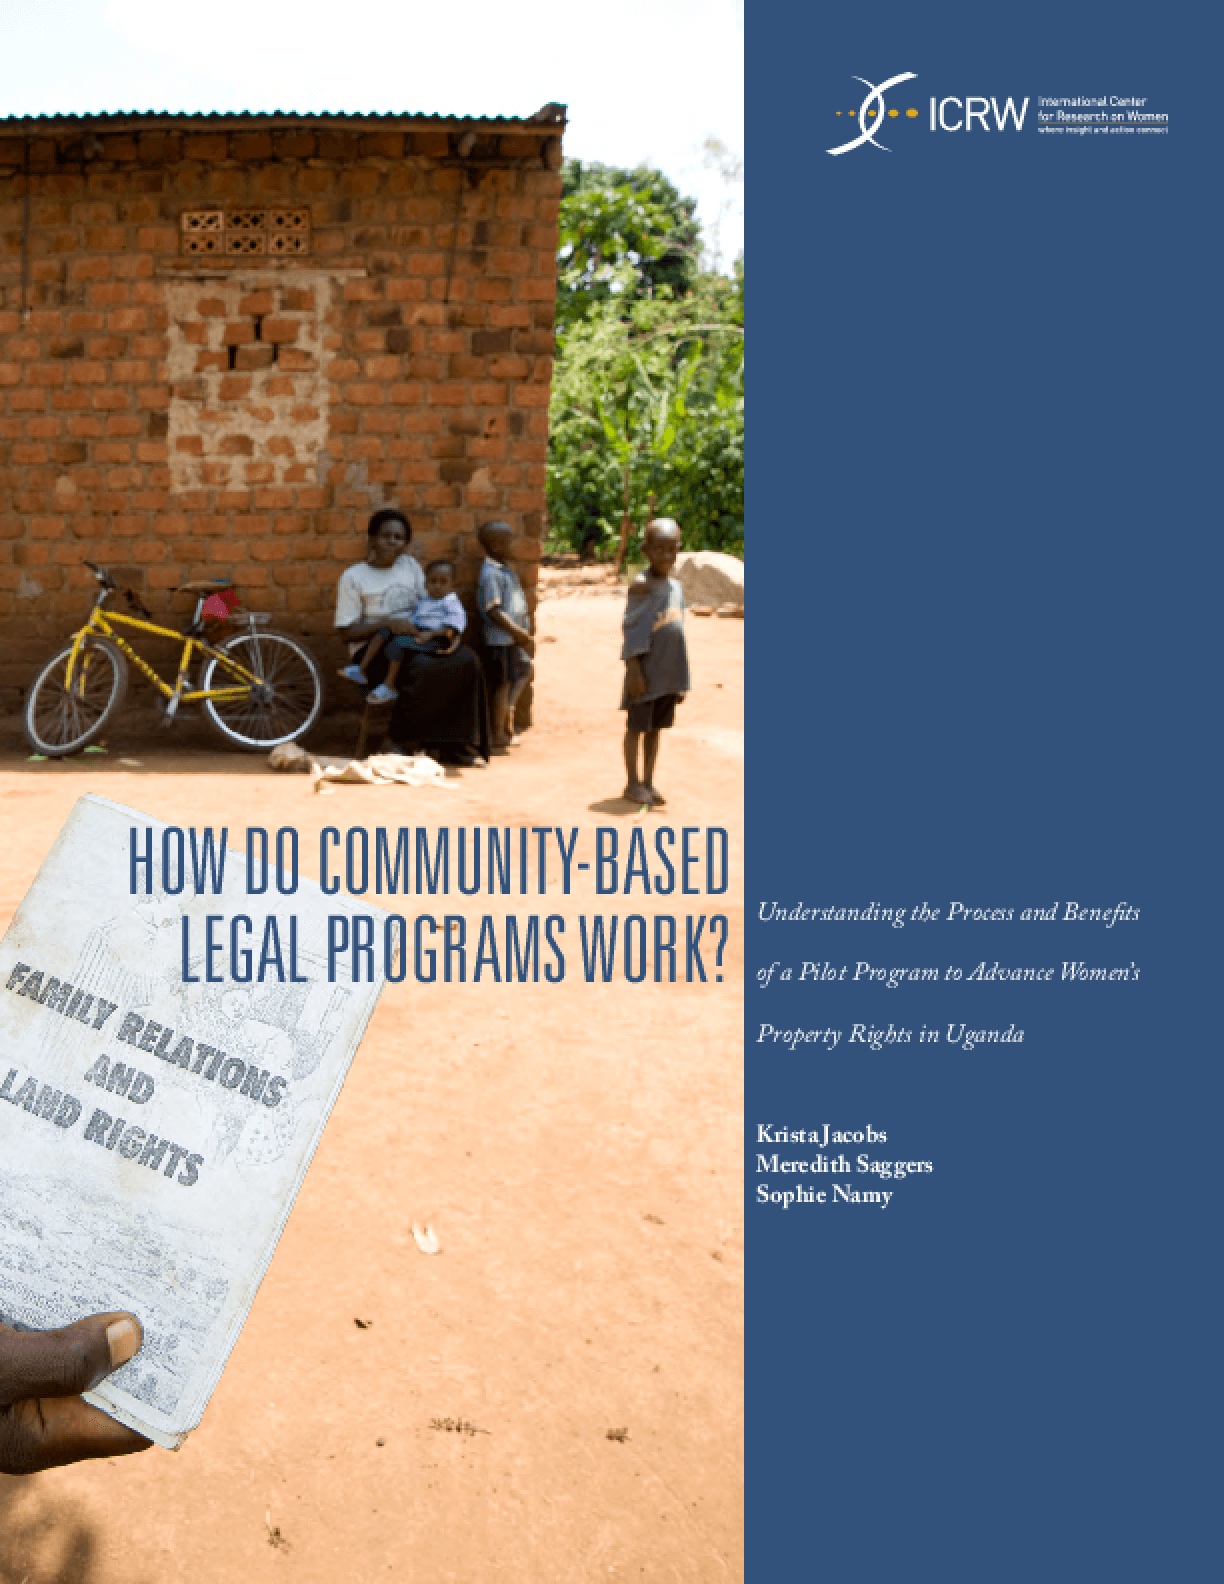 How Do Community-based Legal Programs Work: Understanding the Process and Benefits of a Pilot Program to Advance Women's Property Rights in Uganda